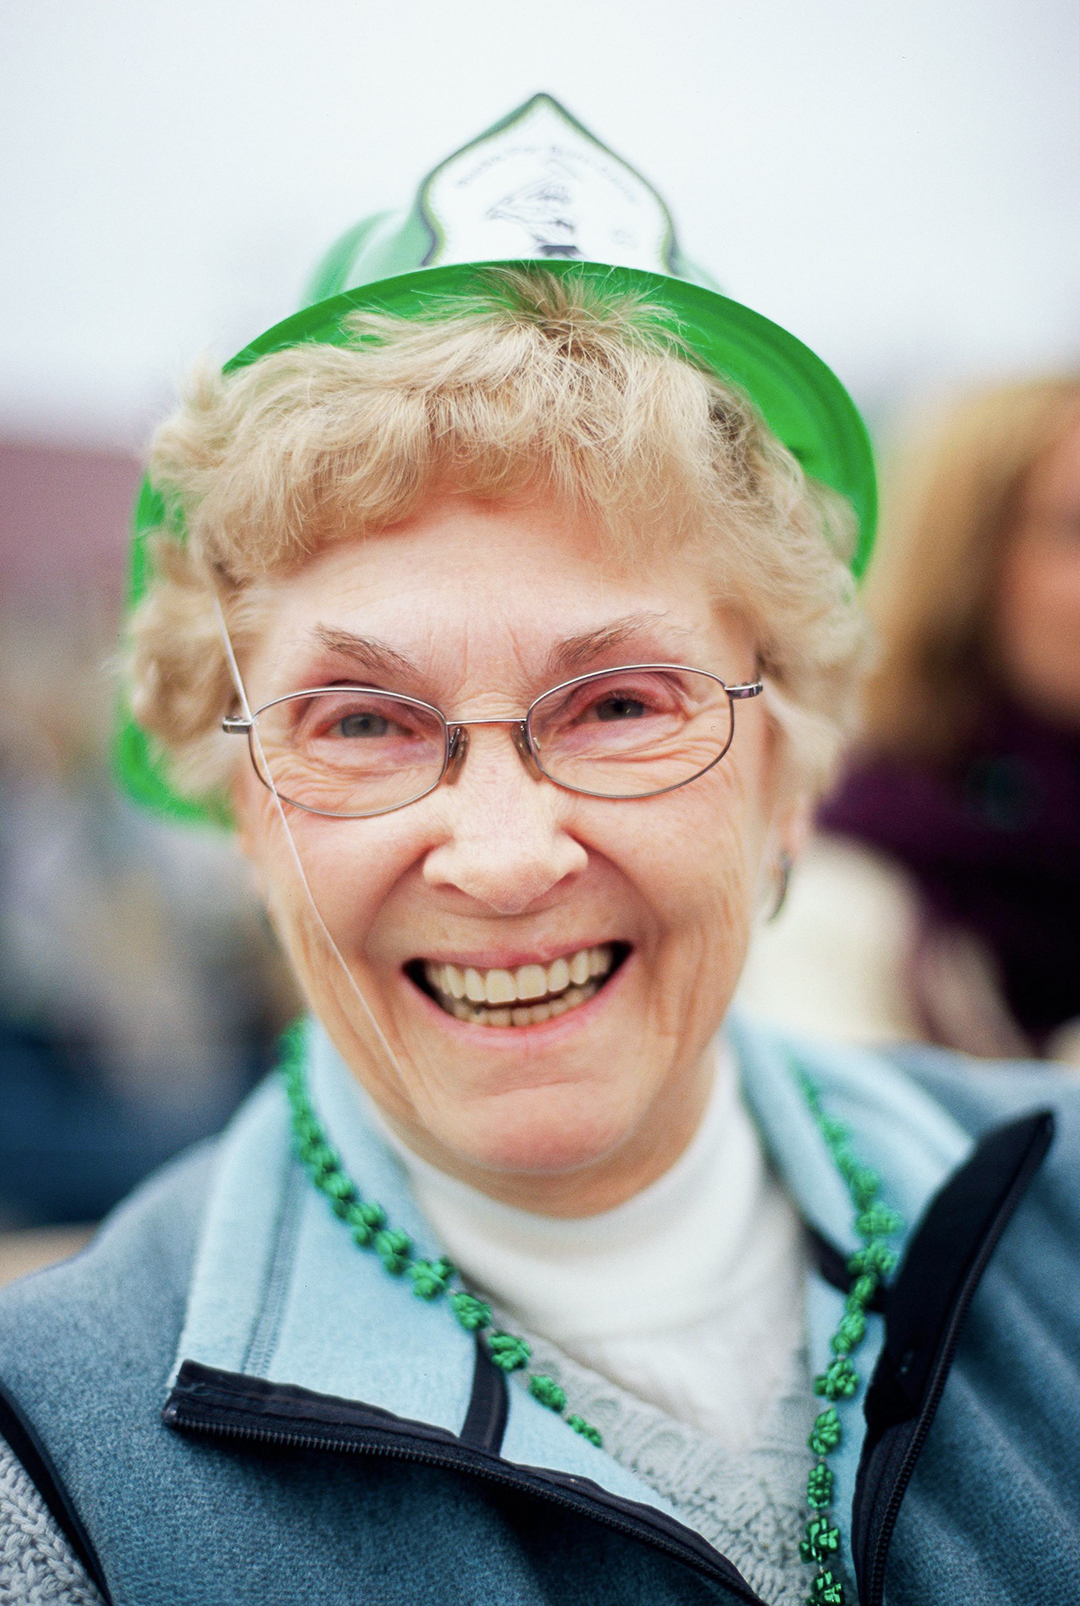 smiling woman wearing green hat and beads in blue jacket